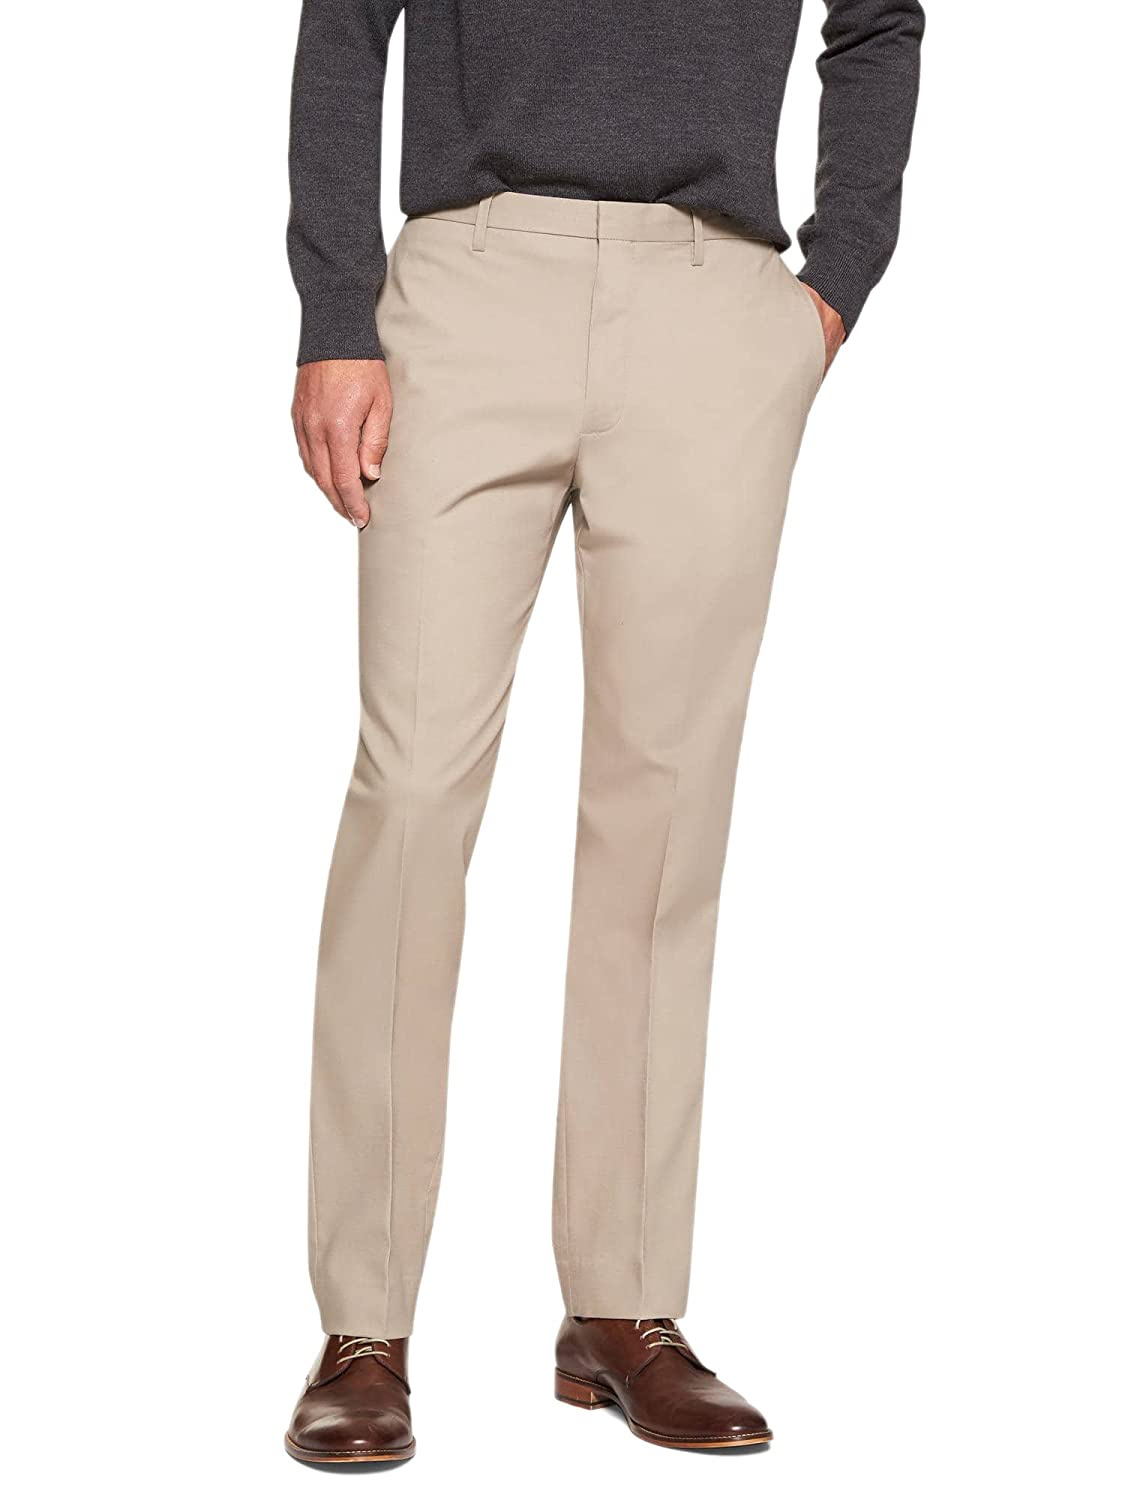 31ddd6e51a Slim Fit through thigh, slim leg opening. Smart technology makes the sleek  pant you love both stain and wrinkle resistant. Plus, we added a touch of  stretch ...